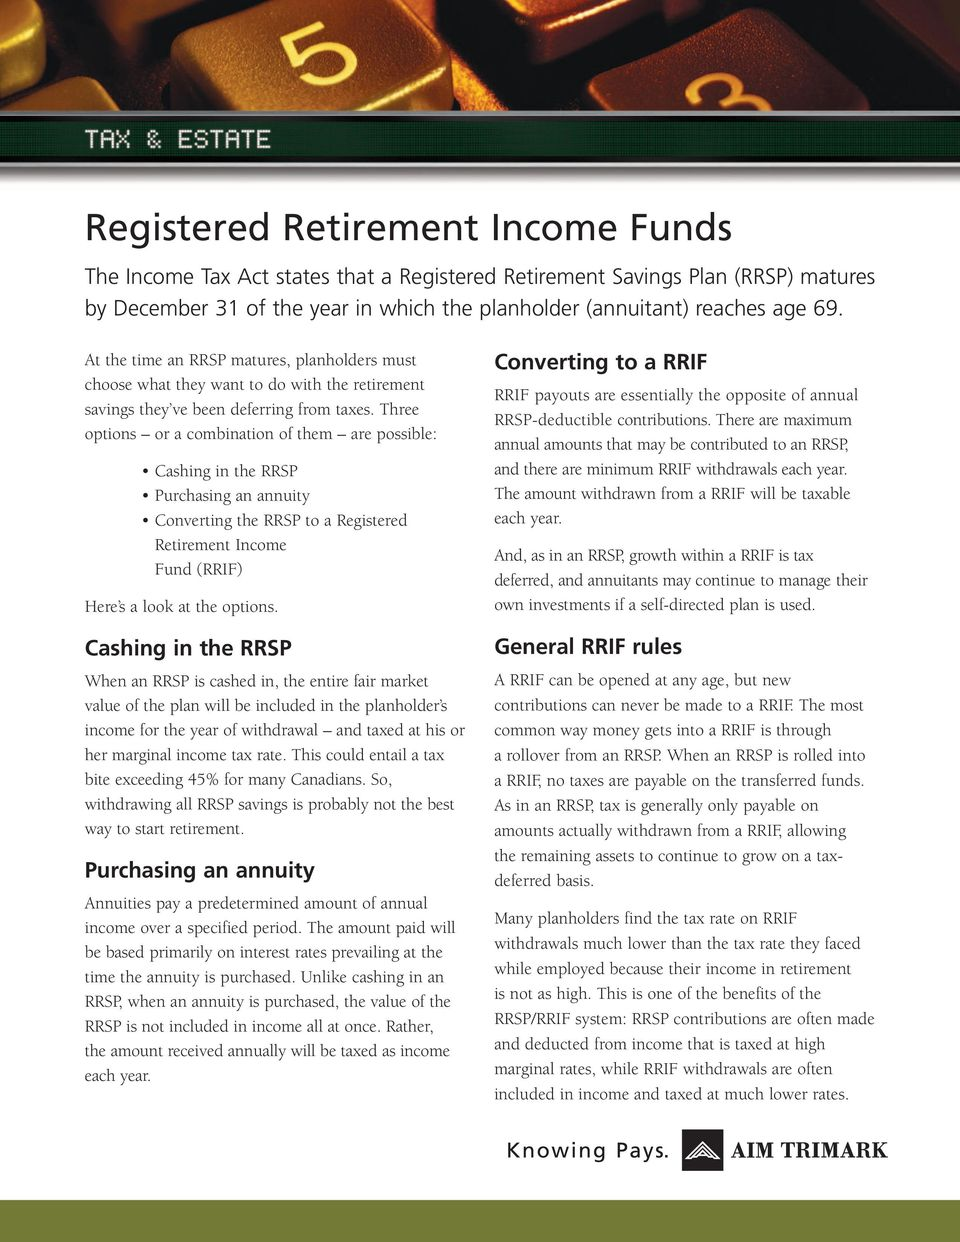 Three options or a combination of them are possible: Cashing in the RRSP Purchasing an annuity Converting the RRSP to a Registered Retirement Income Fund (RRIF) Here s a look at the options.